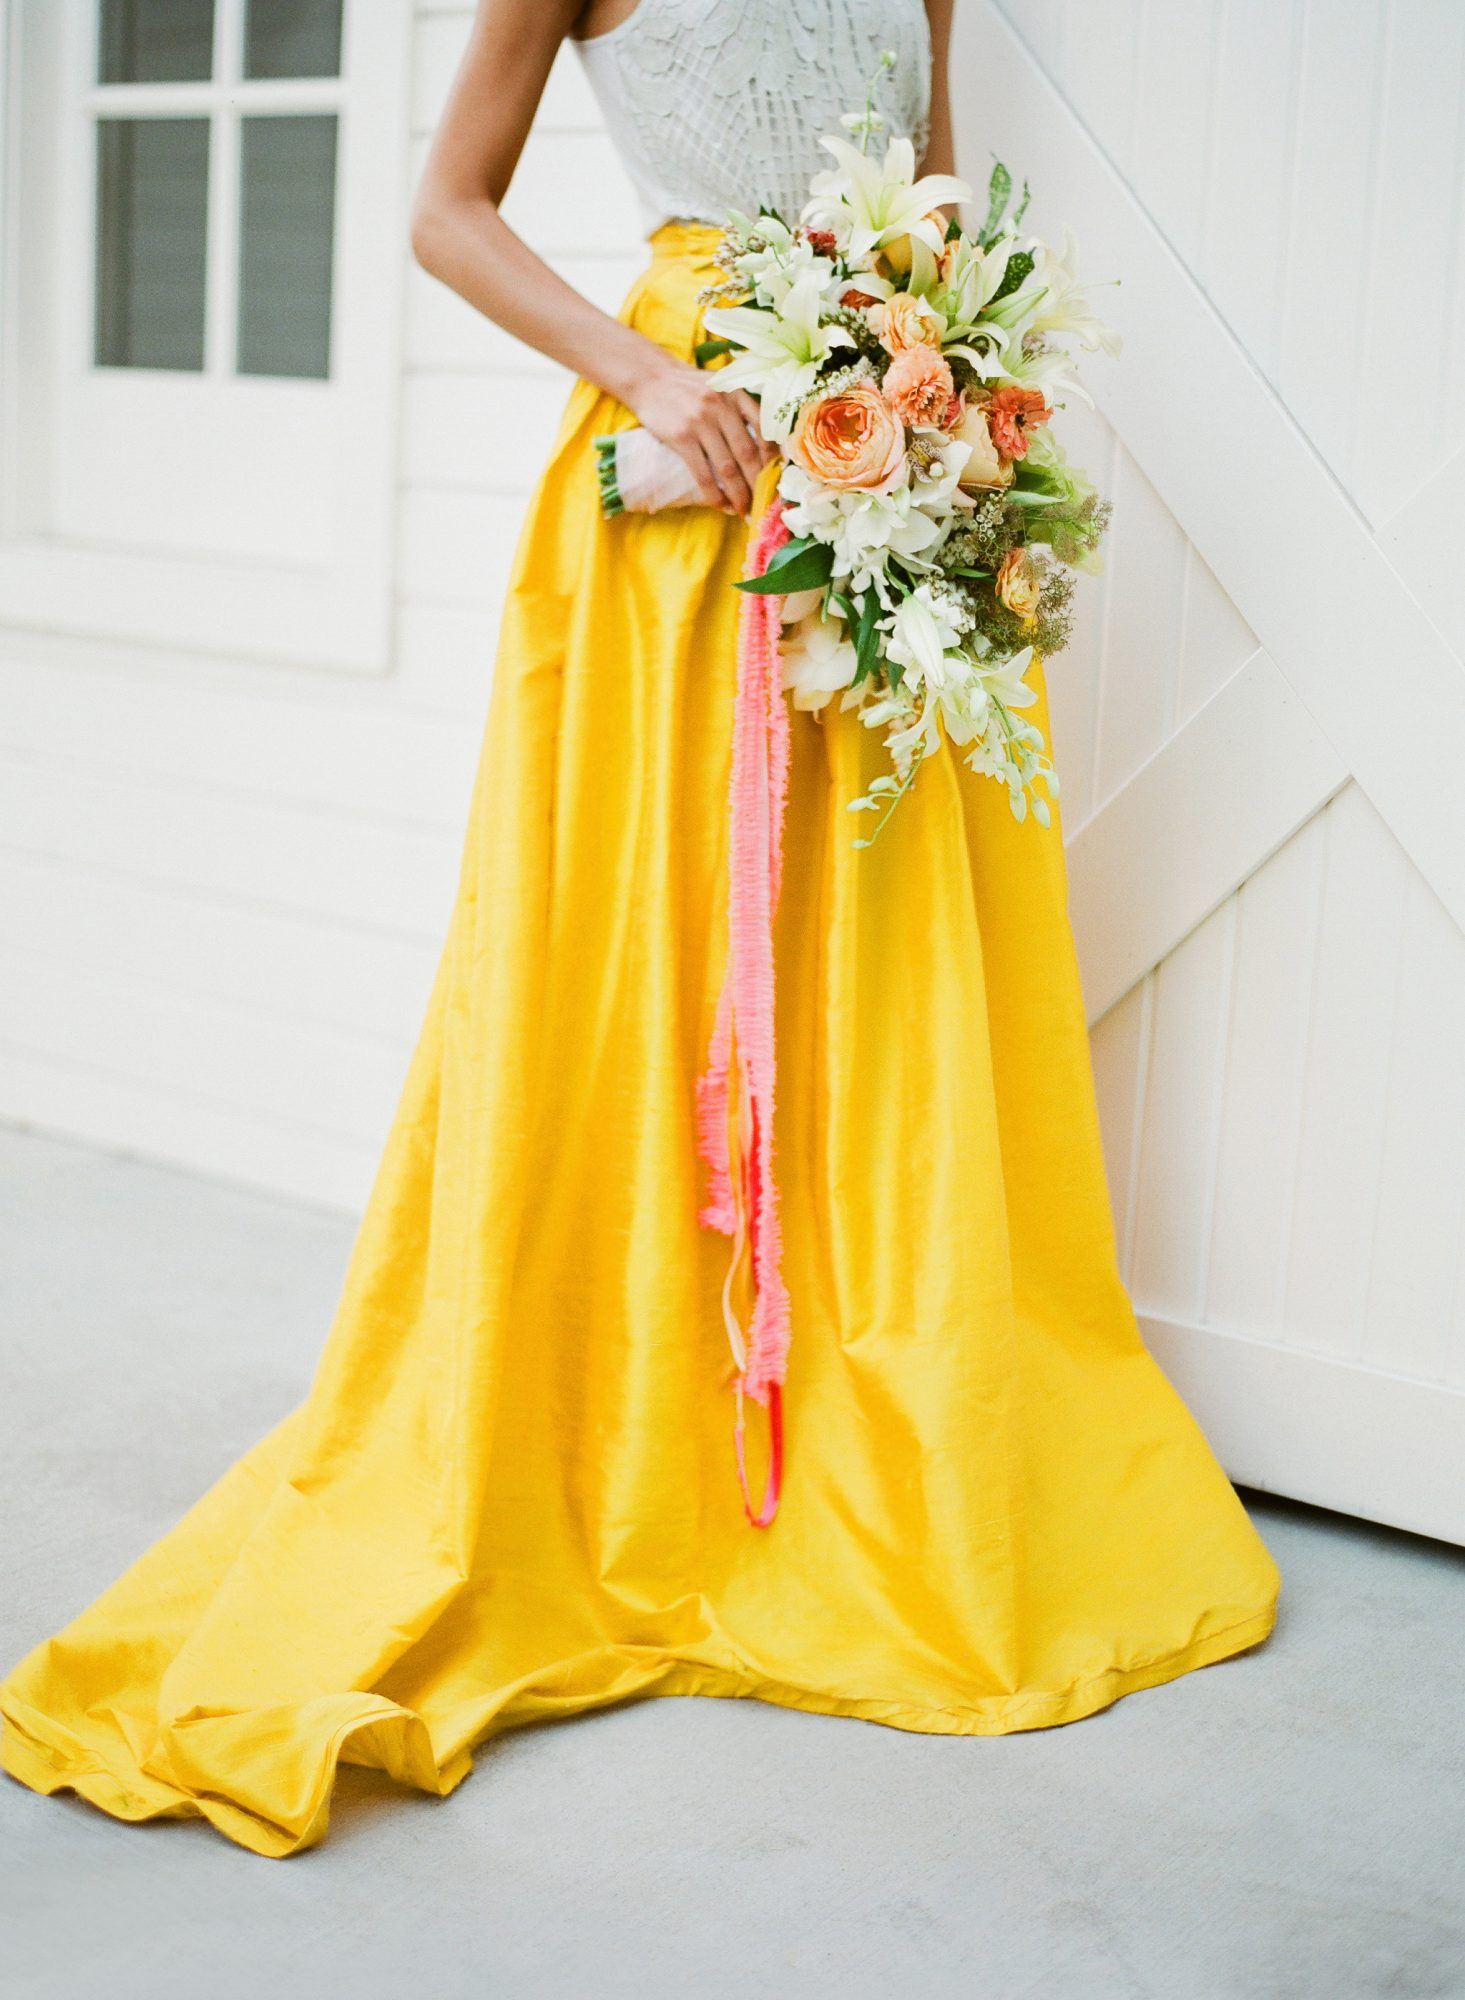 ideas to choose yellowish wedding bouquets for you 1 - Ideas to Choose Yellowish Wedding Bouquets for You